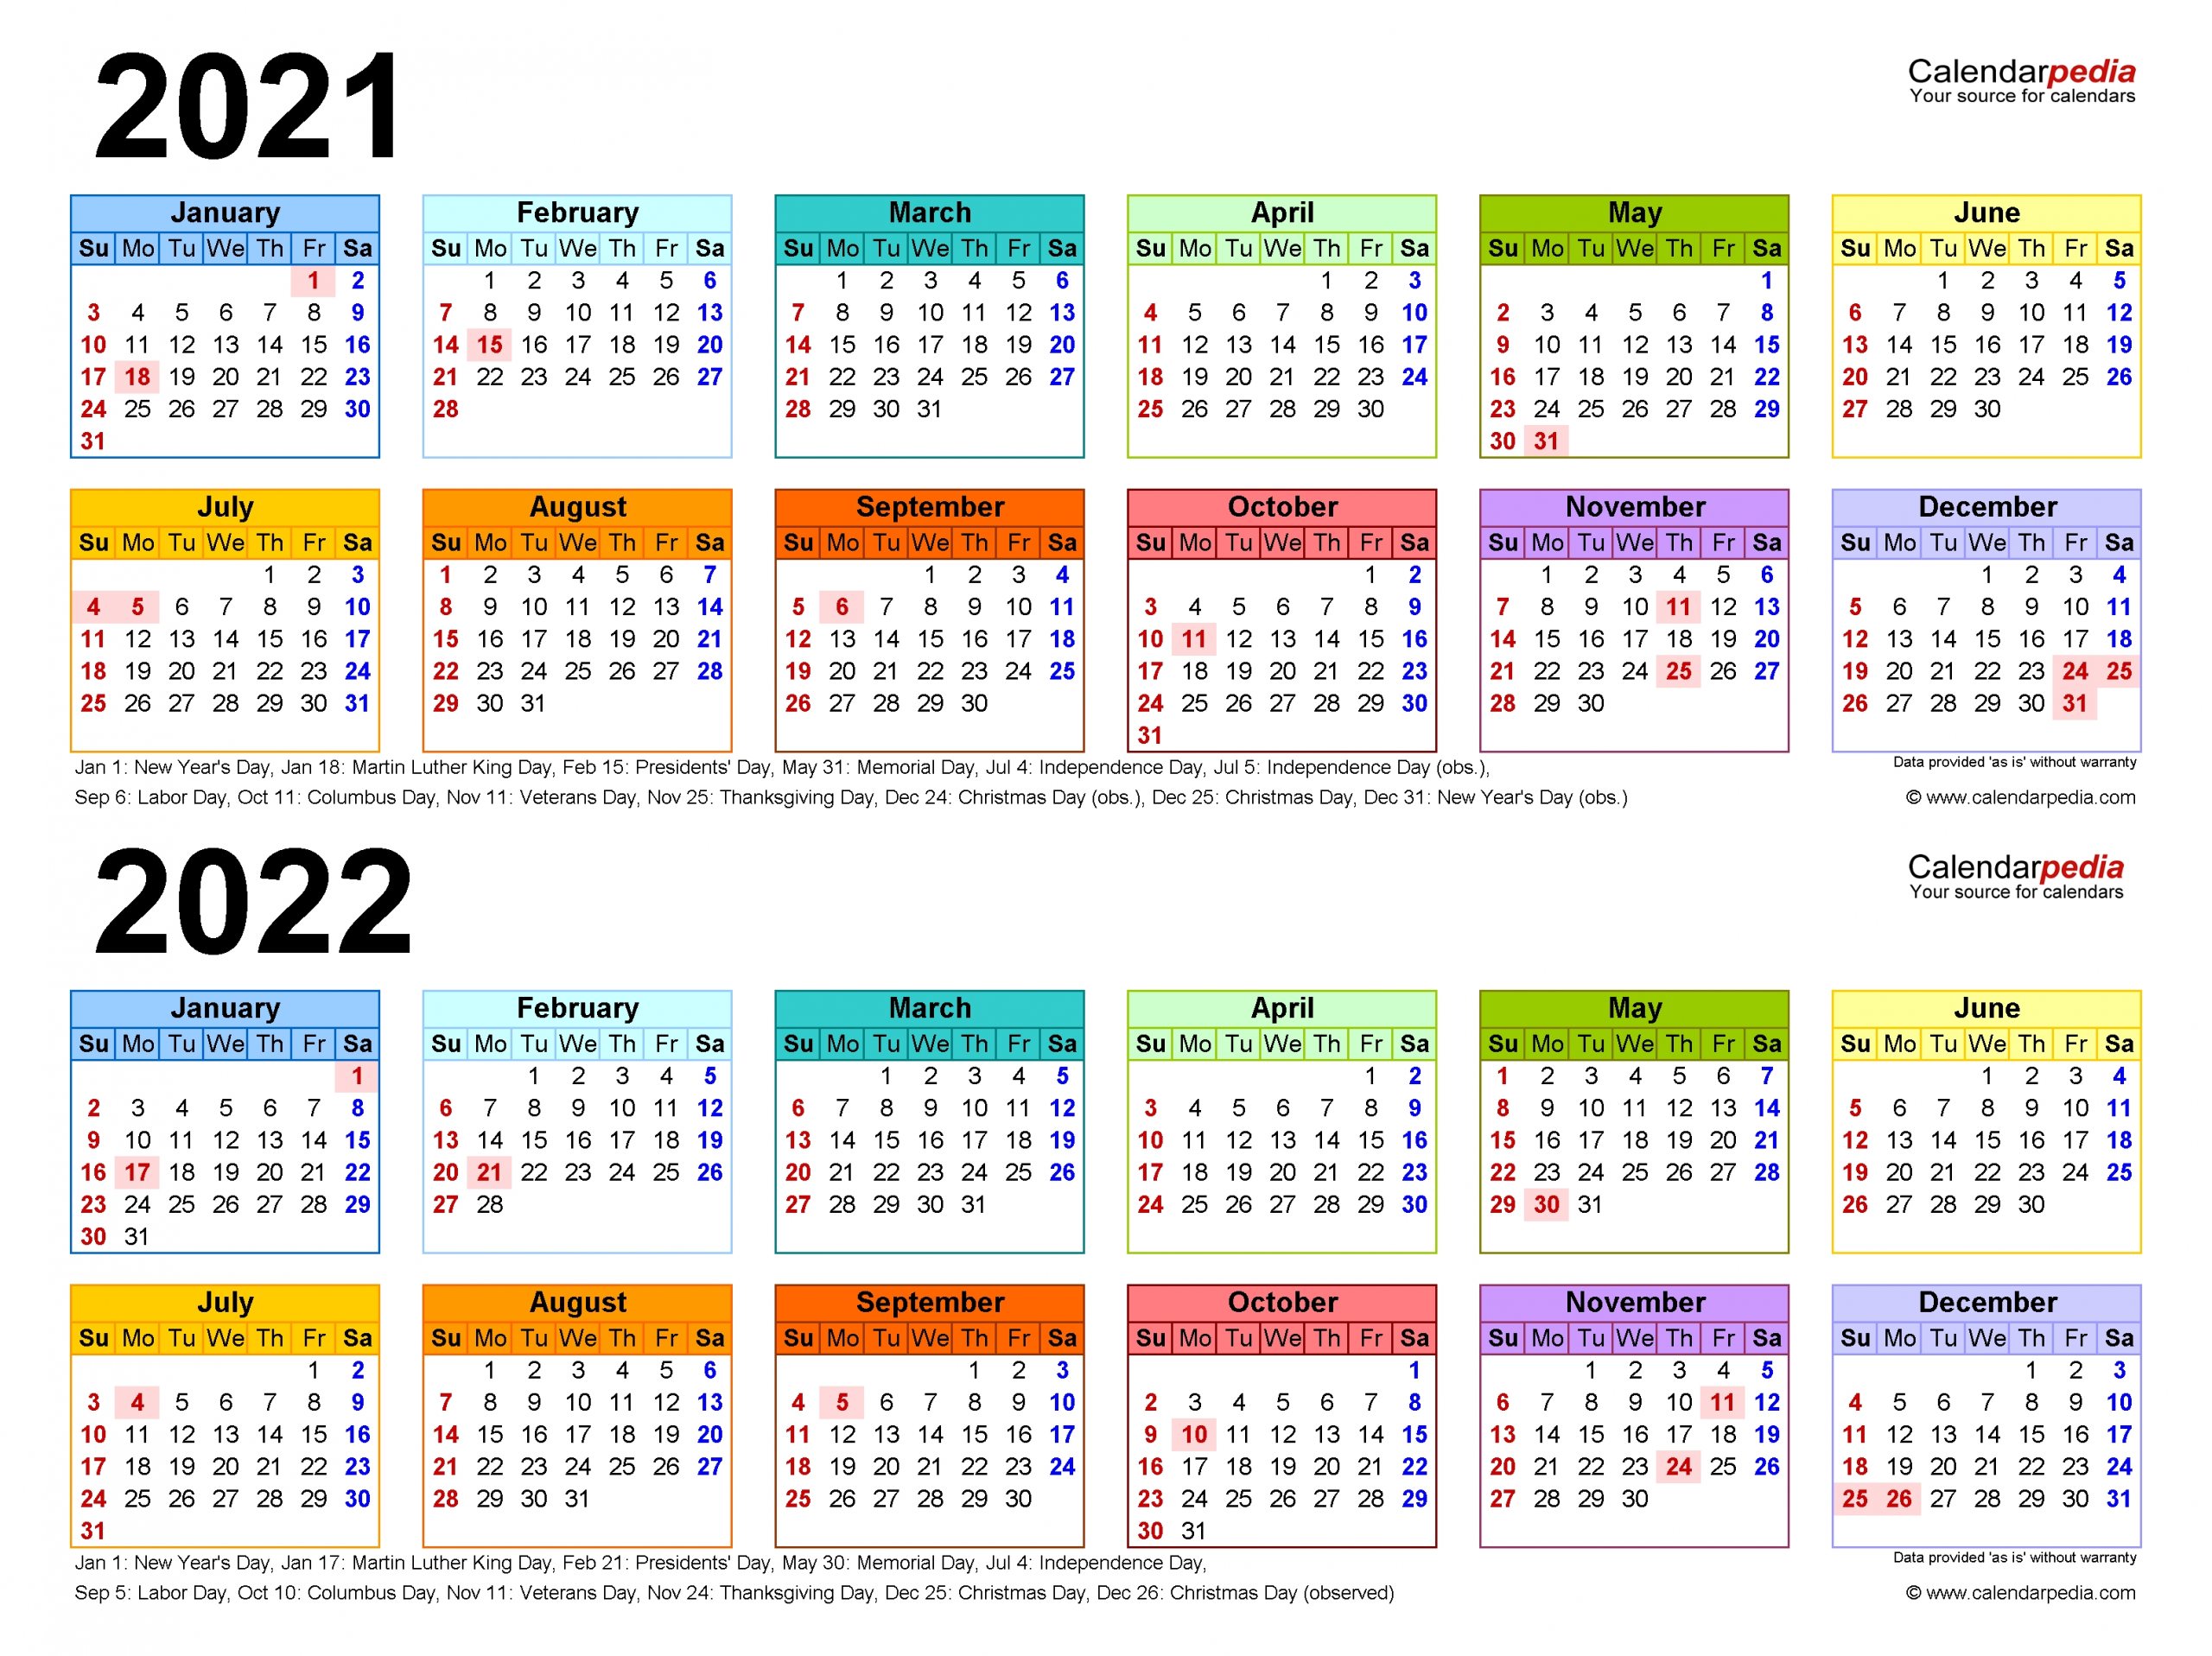 2021-2022 Two Year Calendar - Free Printable Word Templates intended for 2021 2022 Calendar Printable One Page Photo